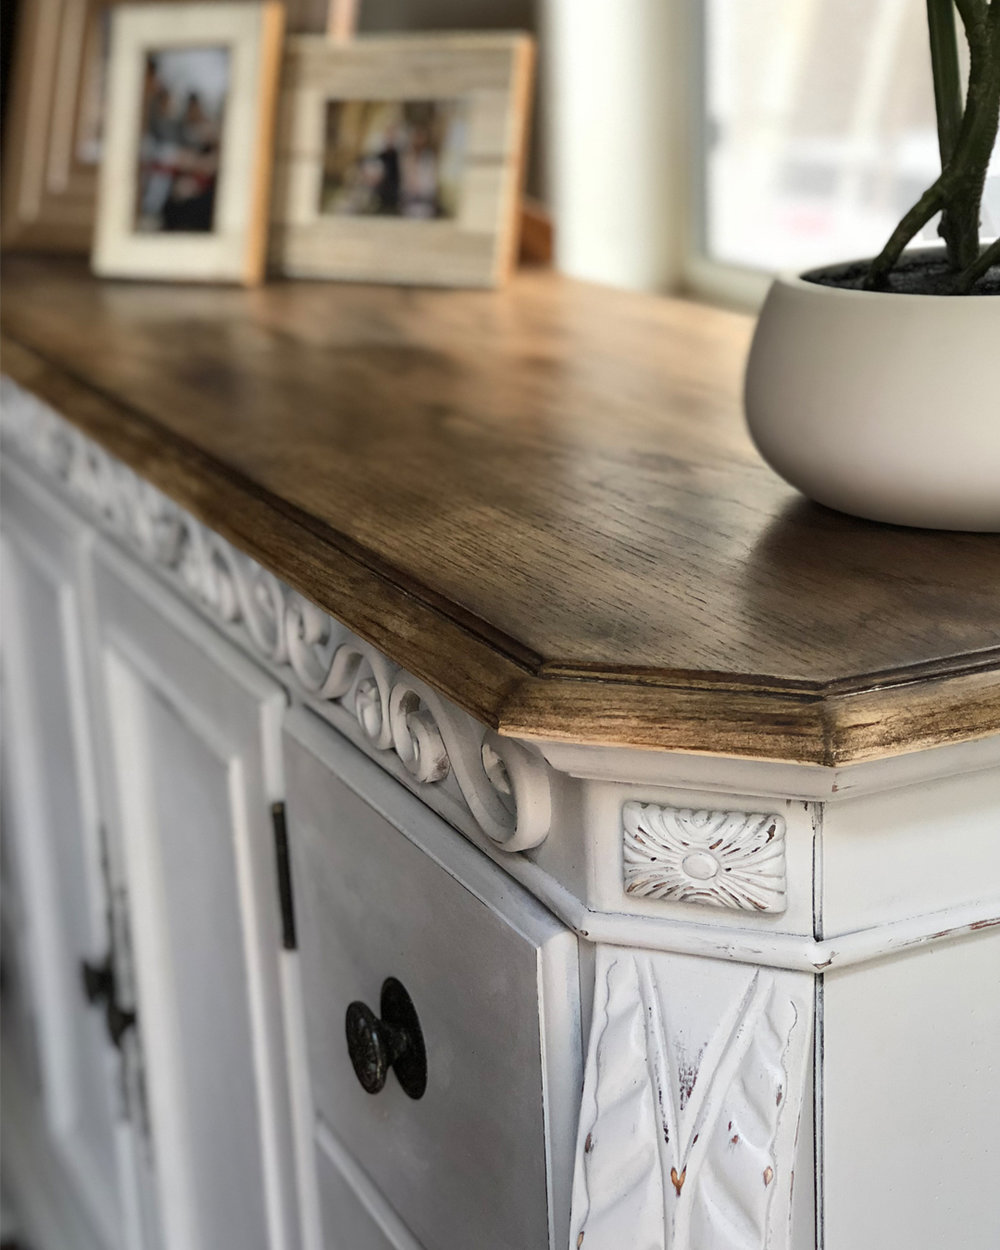 how to paint a vintage buffet, painted dresser, how to chalk paint furniture, DIY chalk paint, chalk paint furniture makeover project, chalk paint, repurposed furniture, furniture makeover inspiration, how to strip and refinish furniture, dark finishing wax, the best way to paint furniture